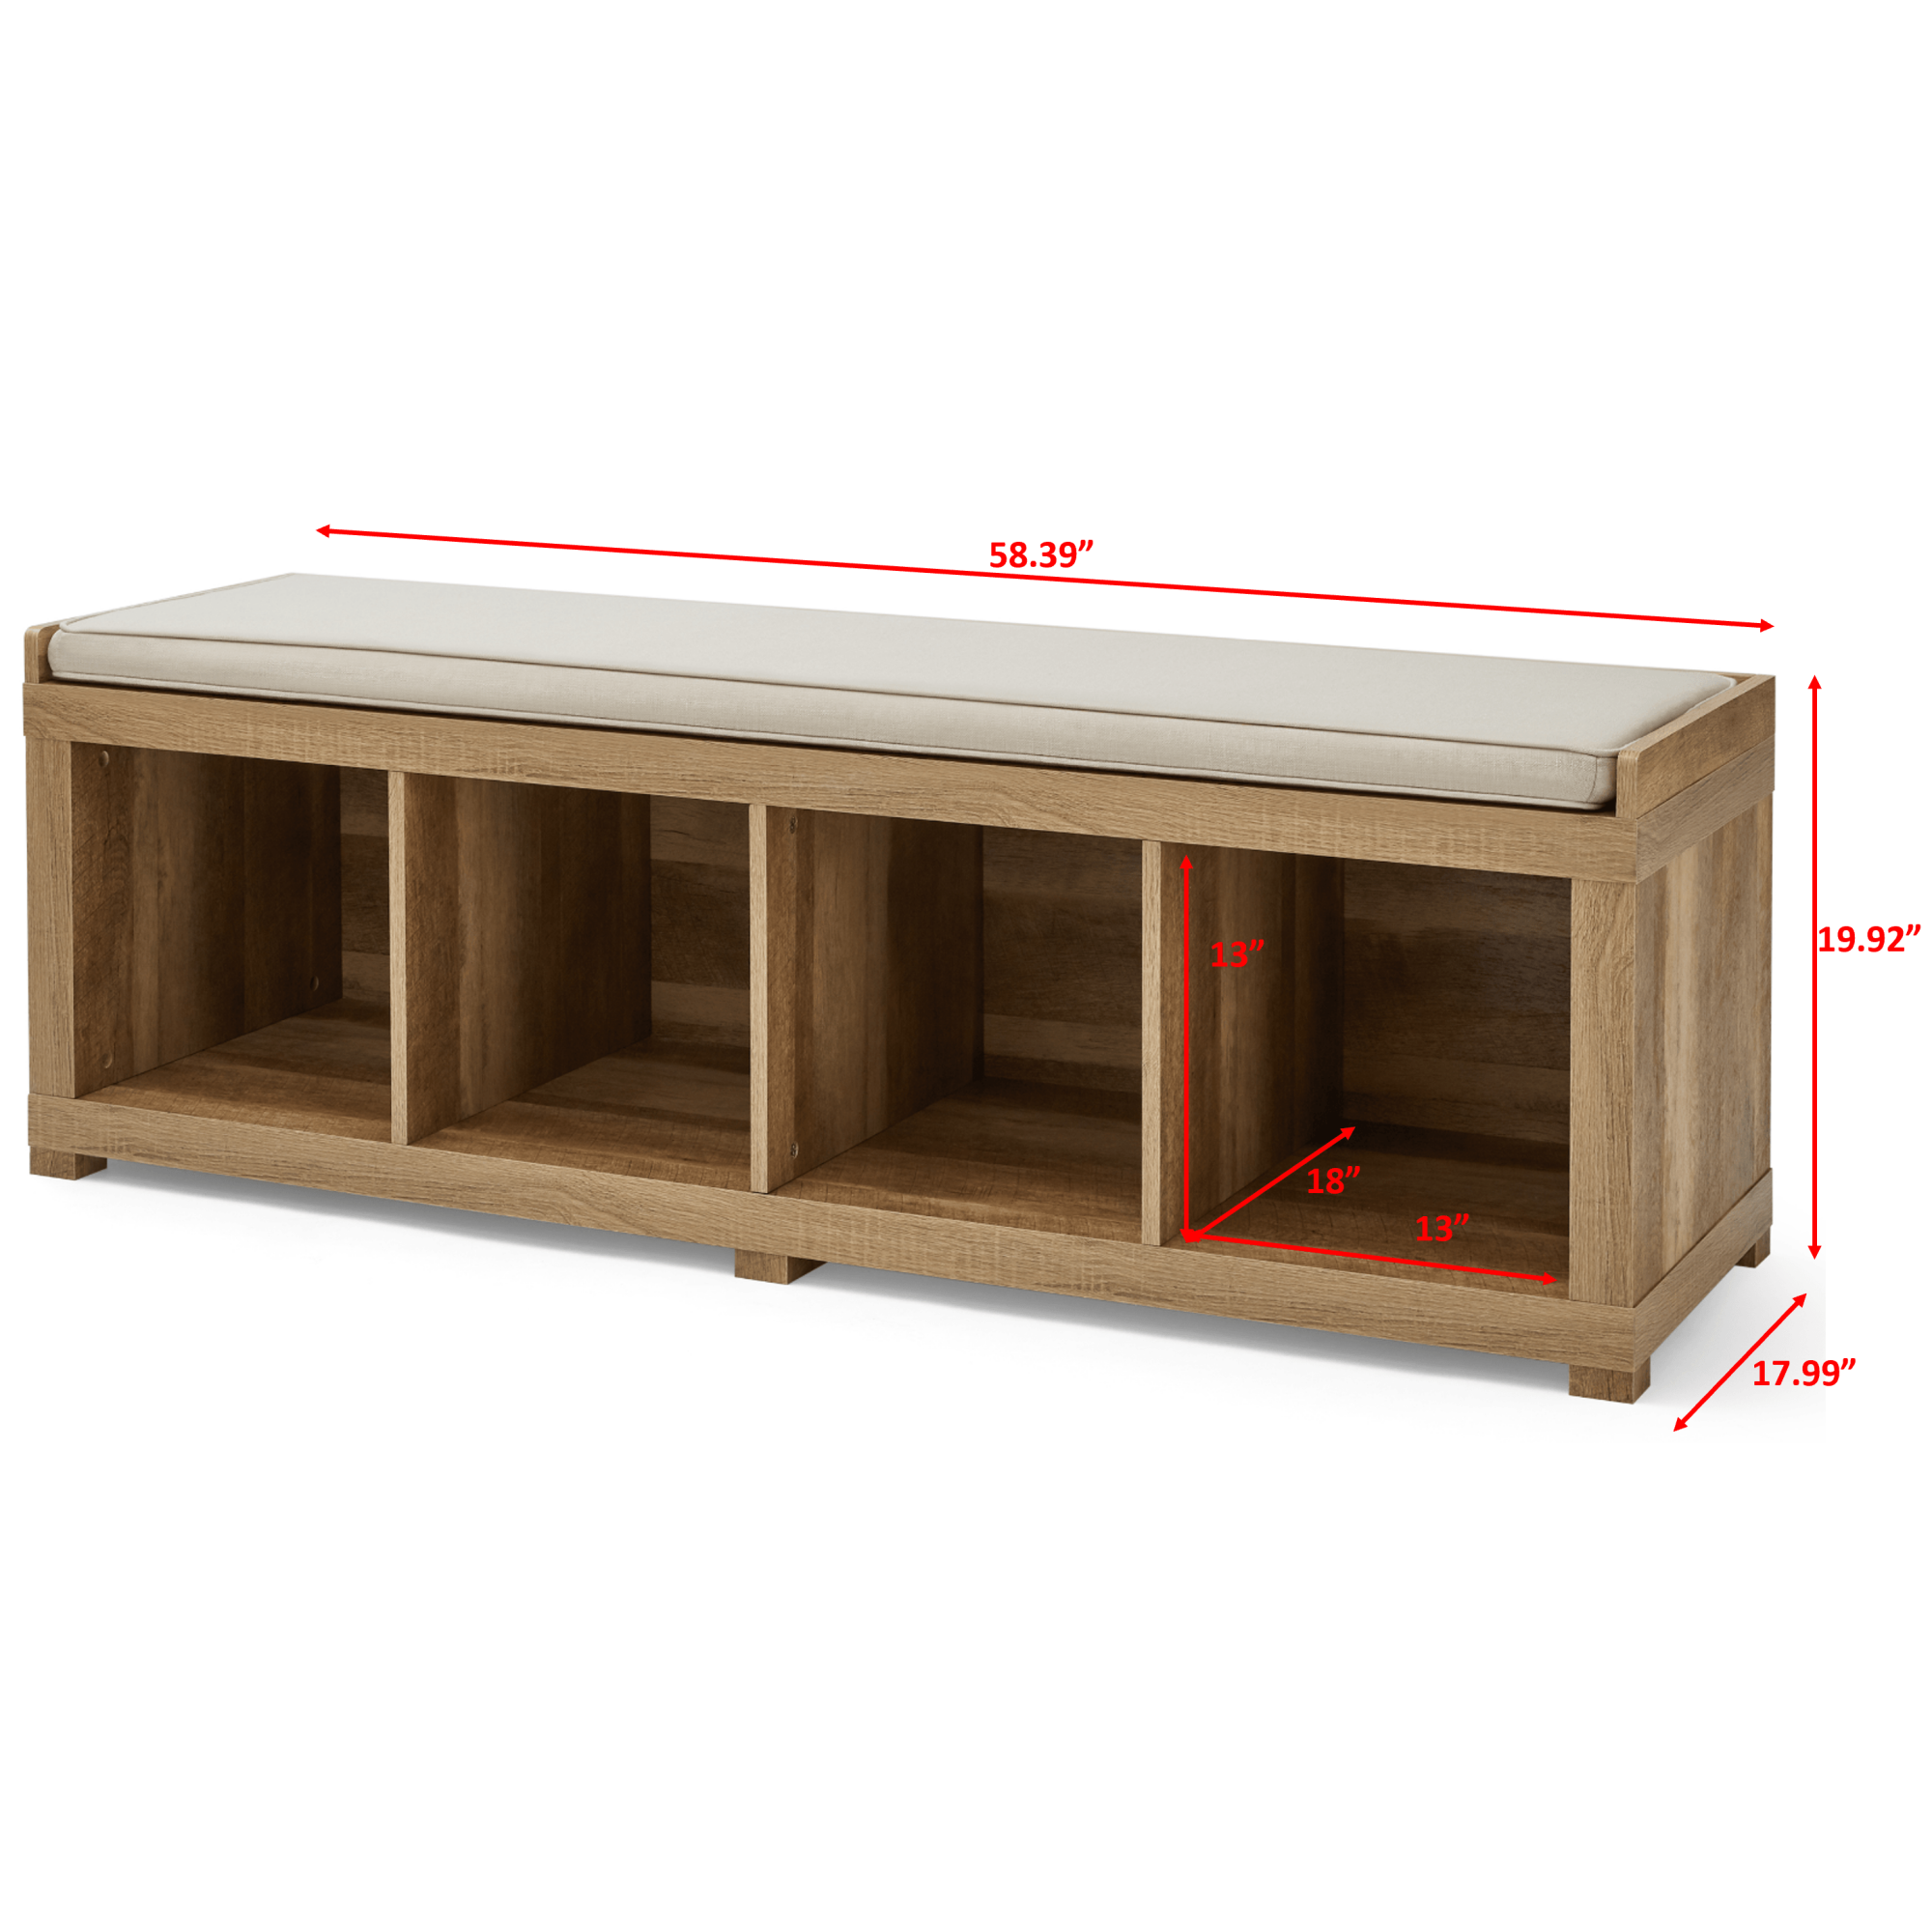 04c2346943f942fd48074cb33c68ba68 - Better Homes And Gardens Diy Bench Seat With Storage